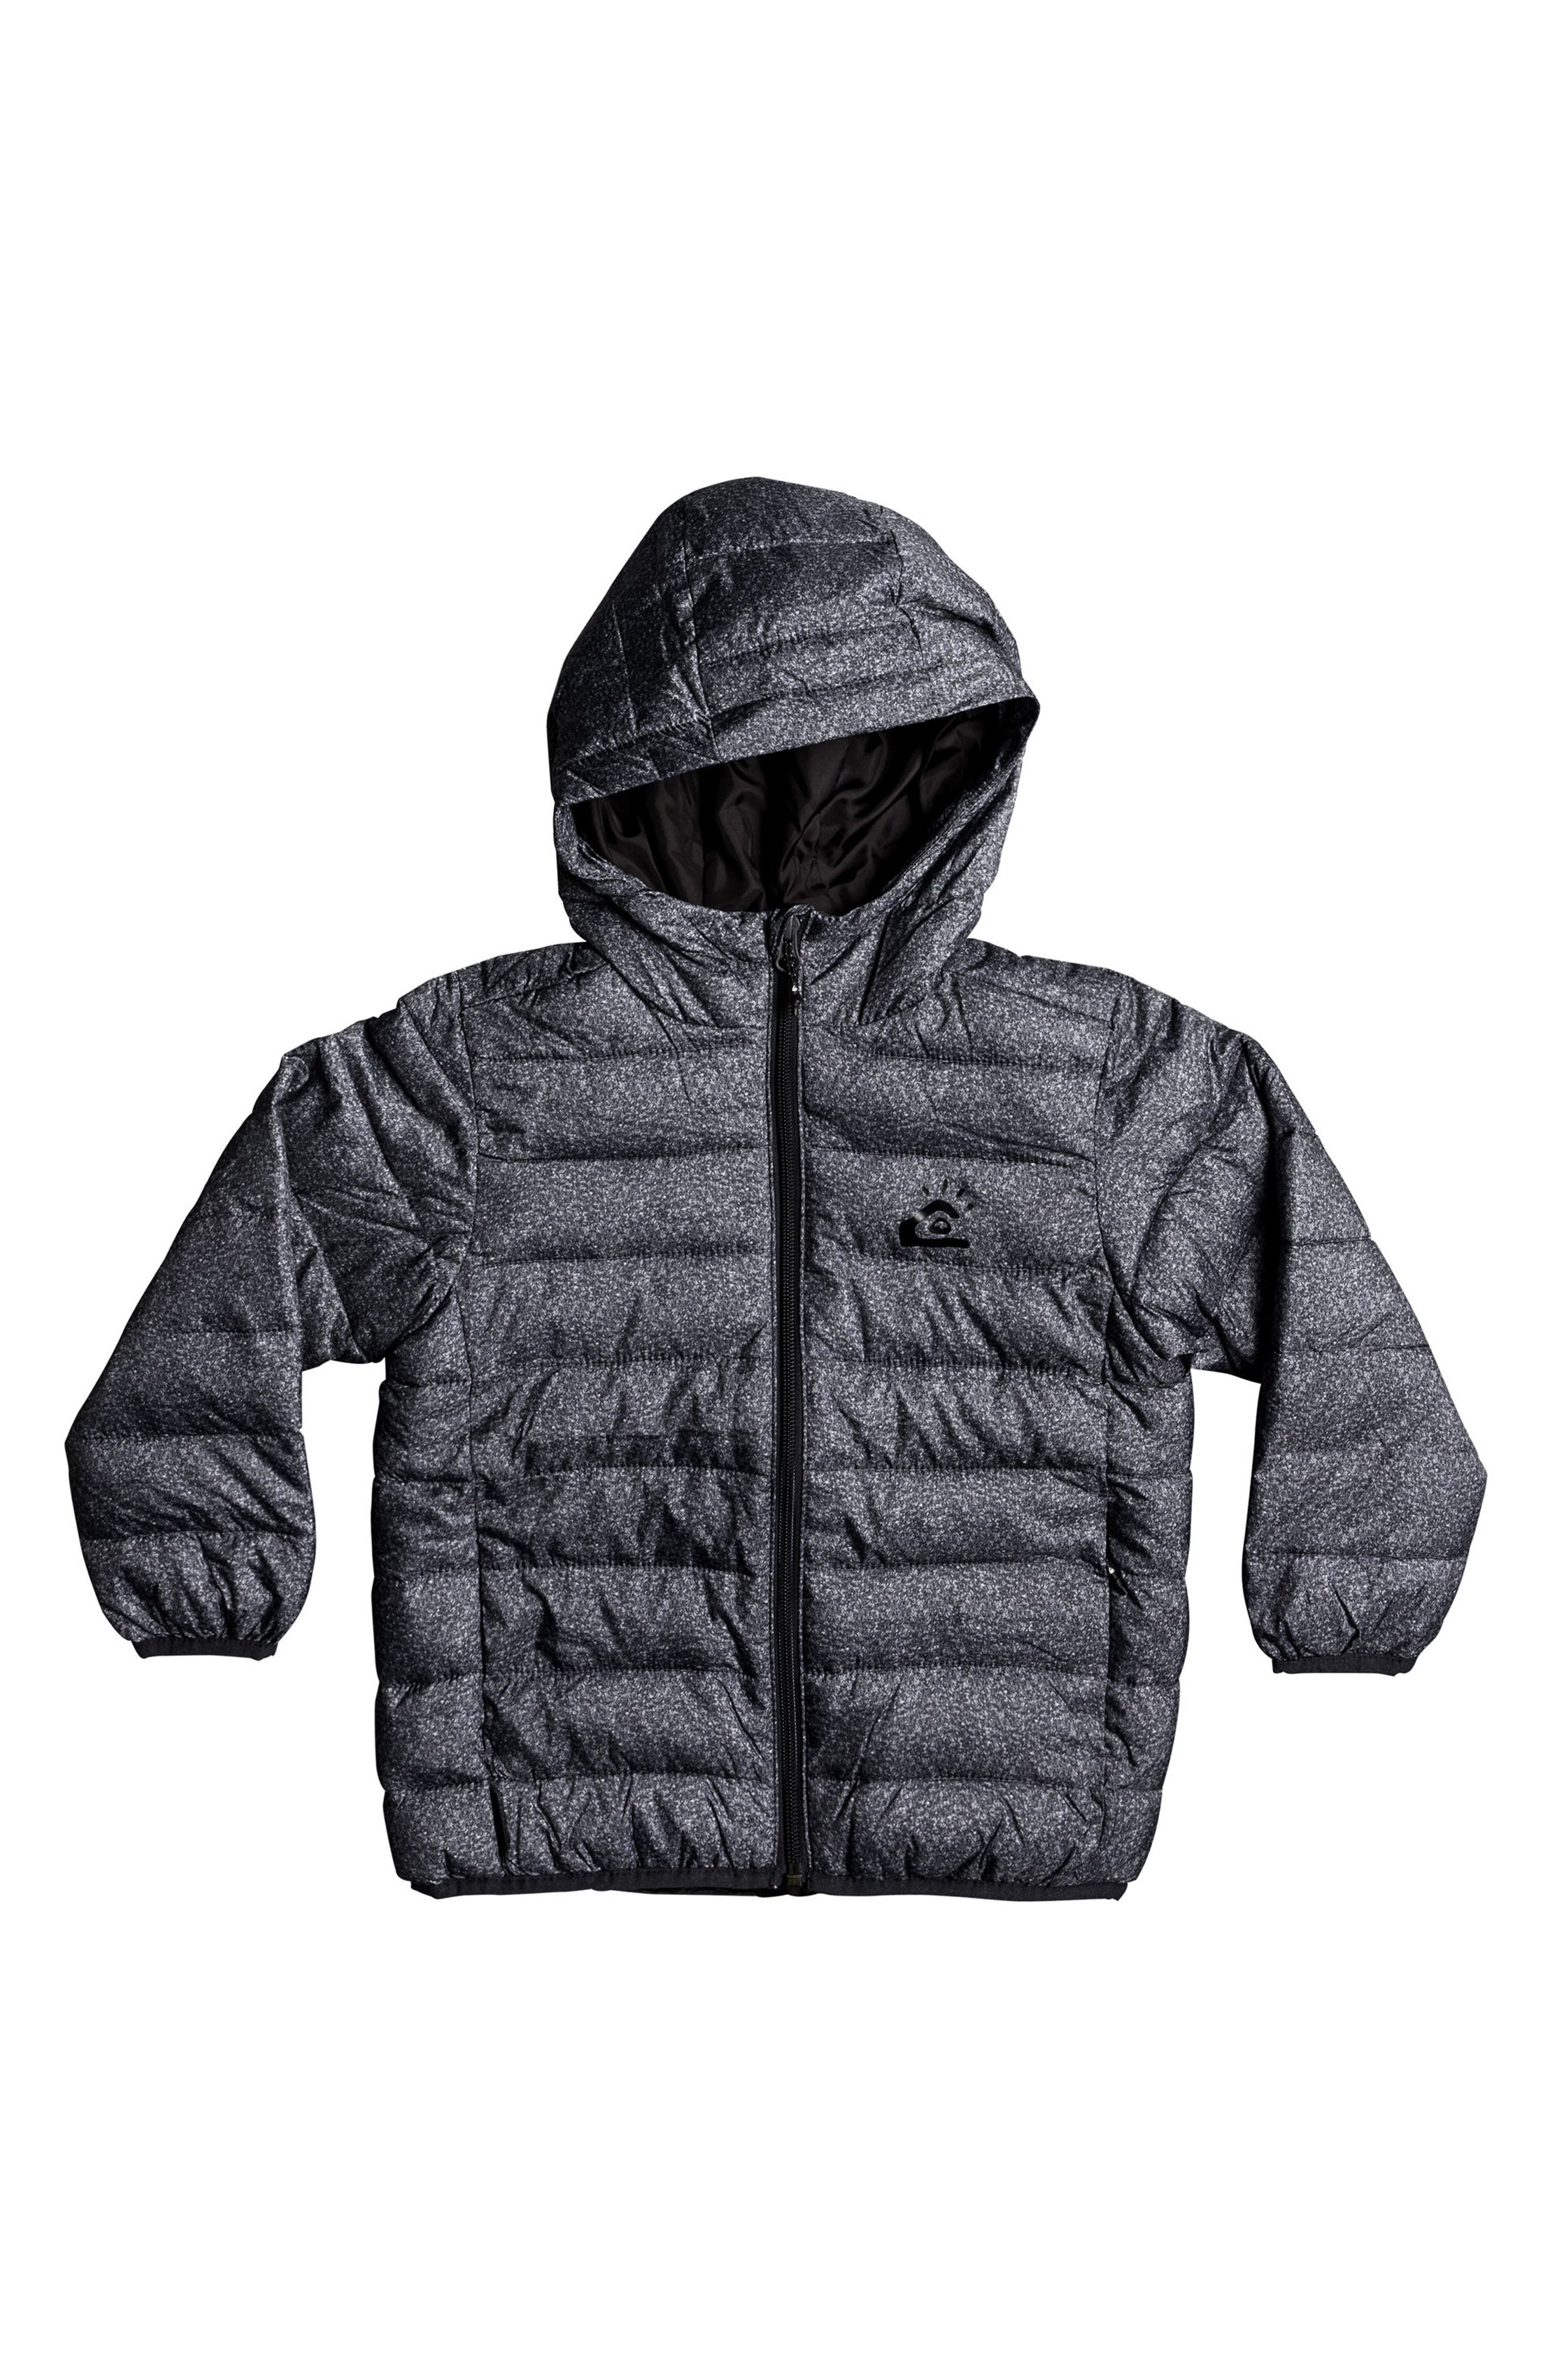 Quicksilver Scaly Water-Resistant Hooded Puffer Jacket,                         Main,                         color, 020